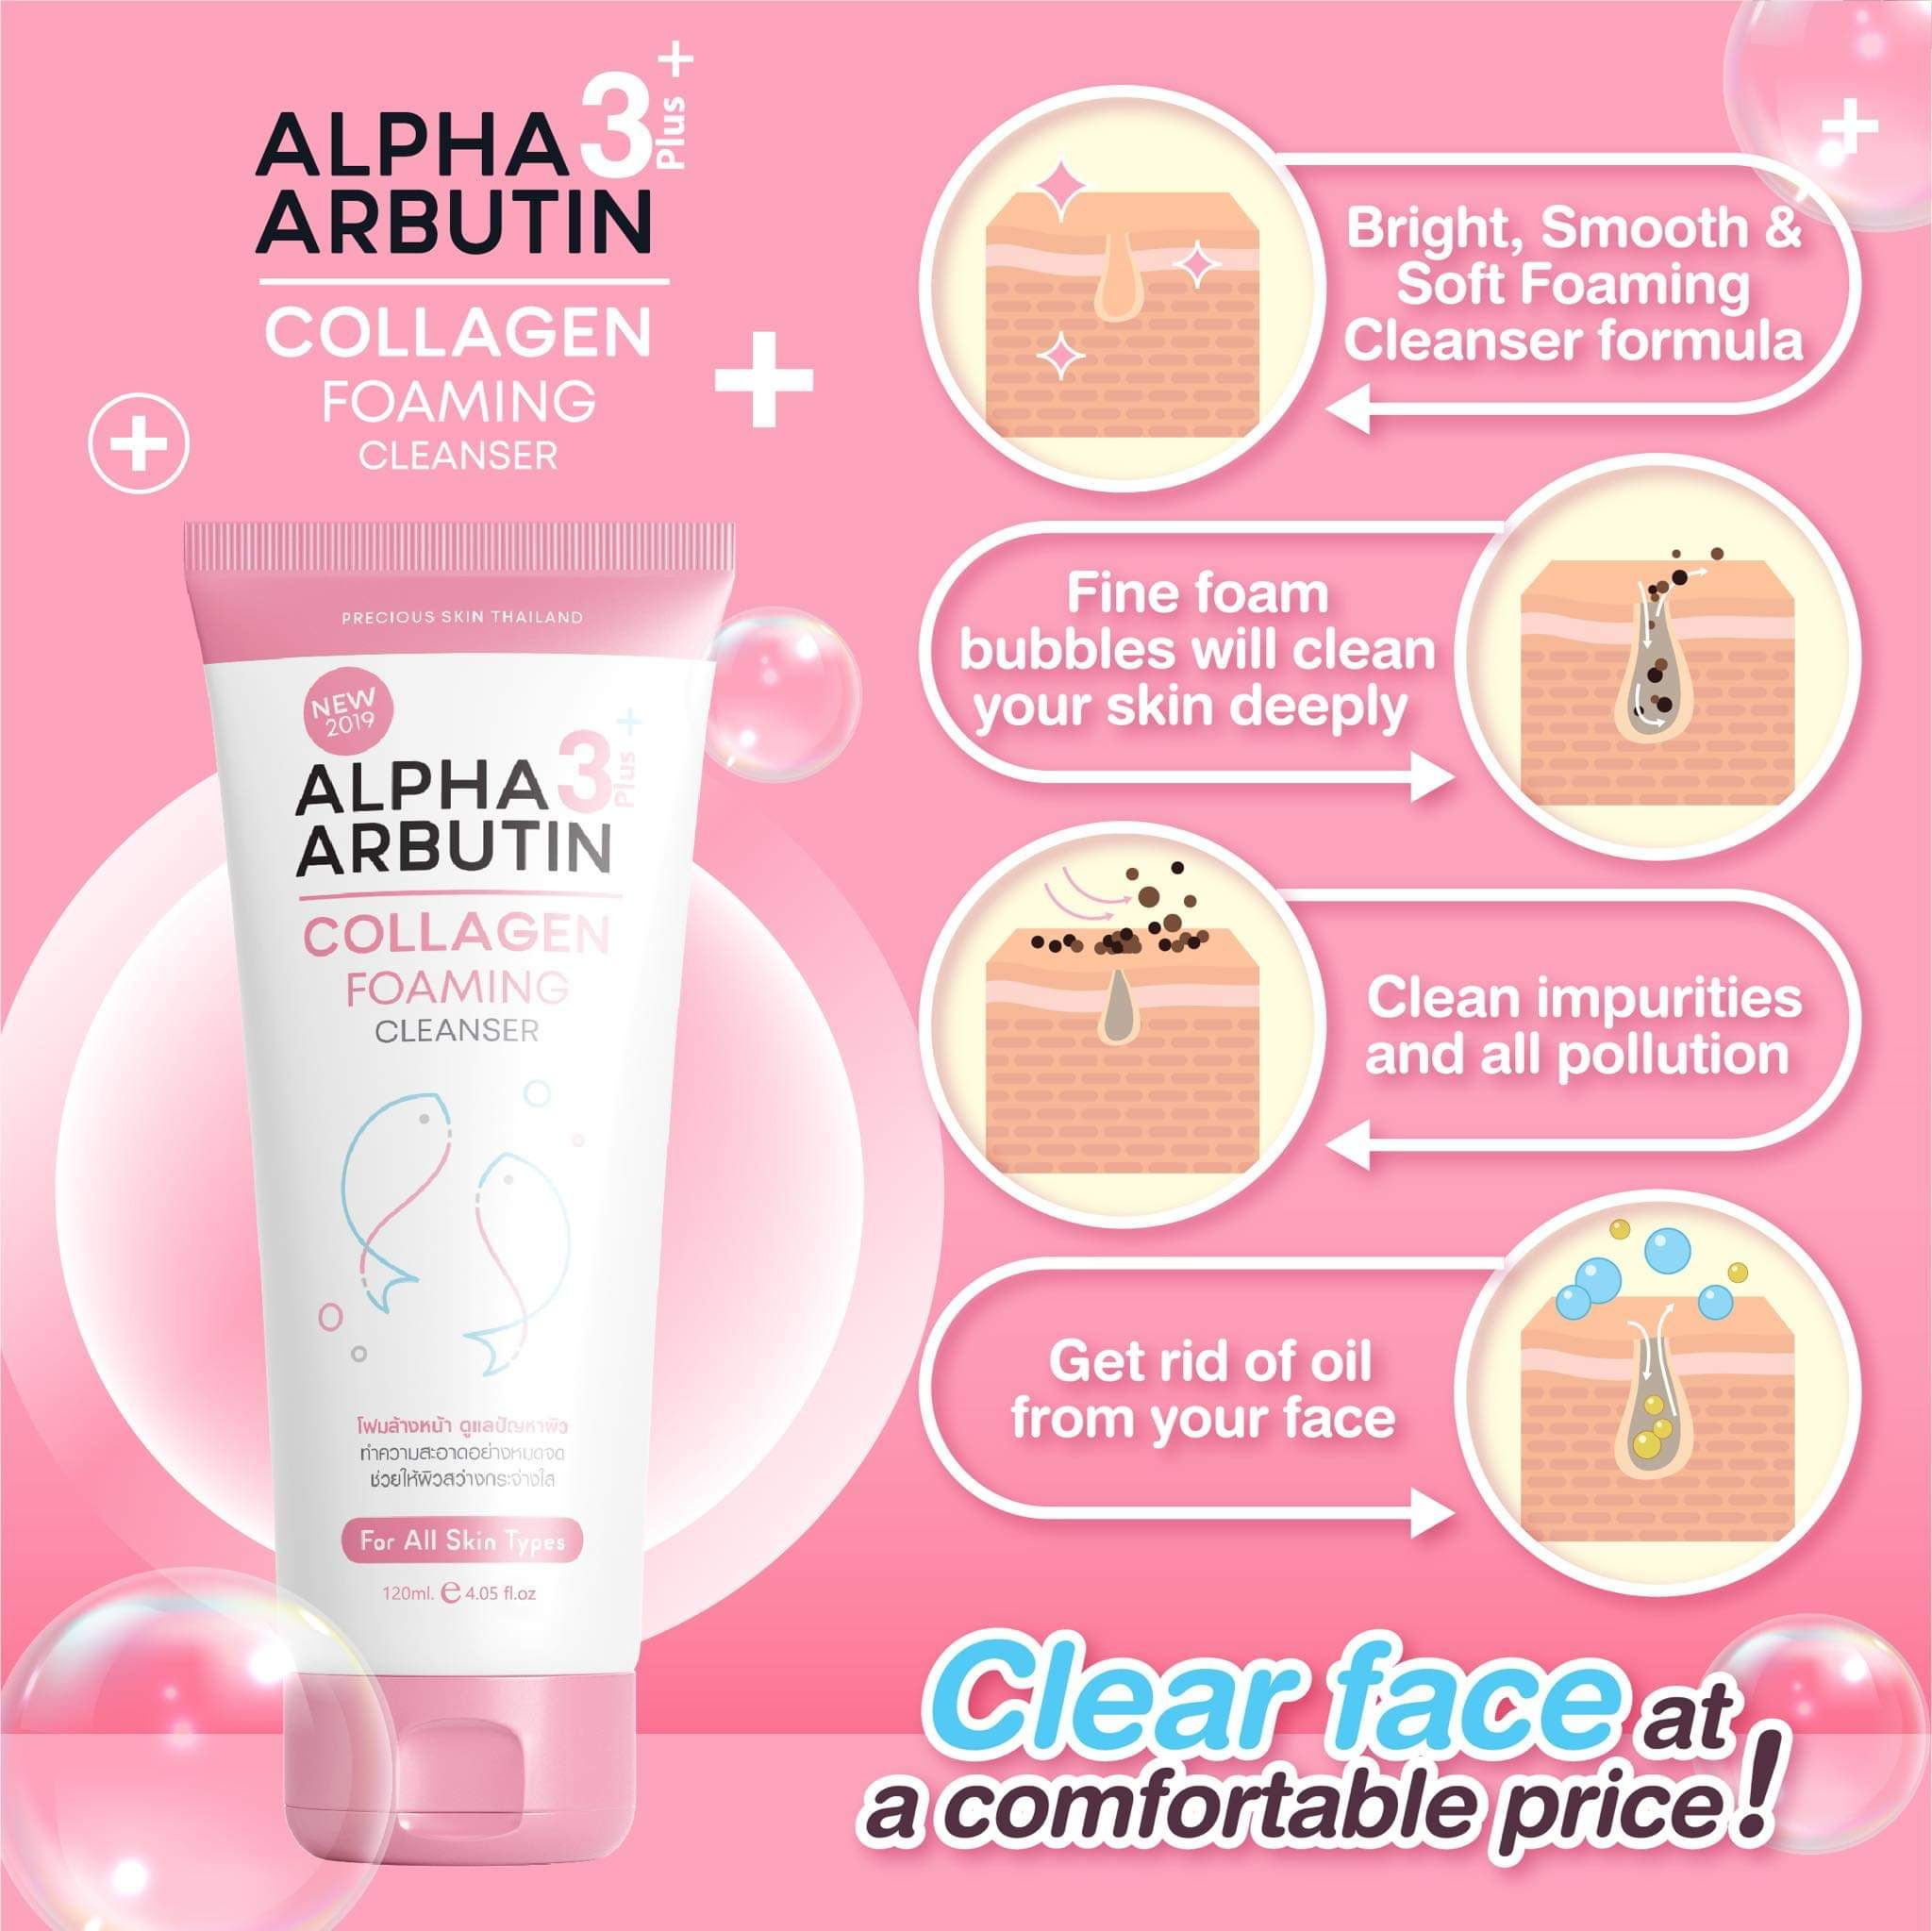 Sữa rửa mặt Alpha Arbutin Lollagen Foaming Cleanser